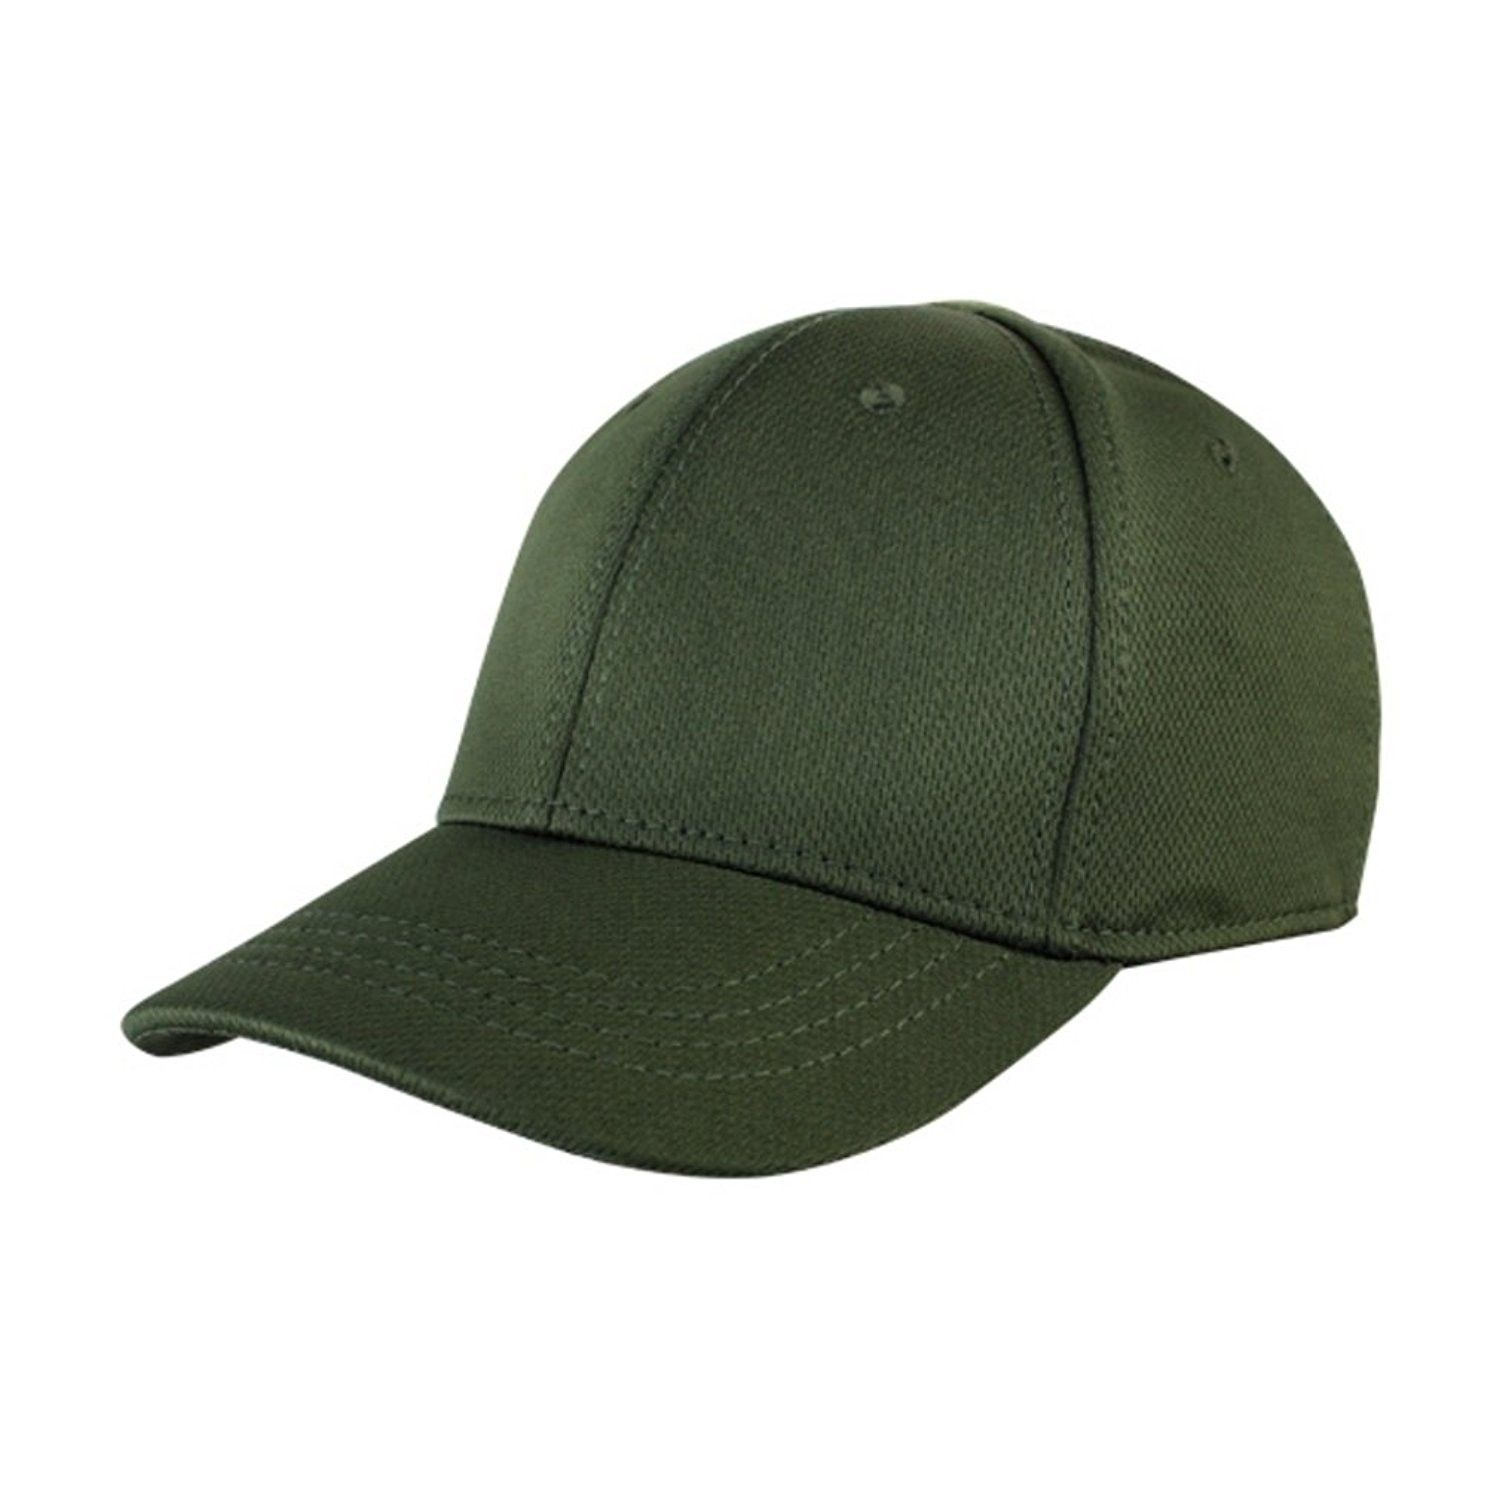 363f5868d6e Condor Flex Tactical Team Cap (OD Green) + FREE Warrior Patch- Fitted Plain    Blank - C712MAX6L93 - Hats   Caps